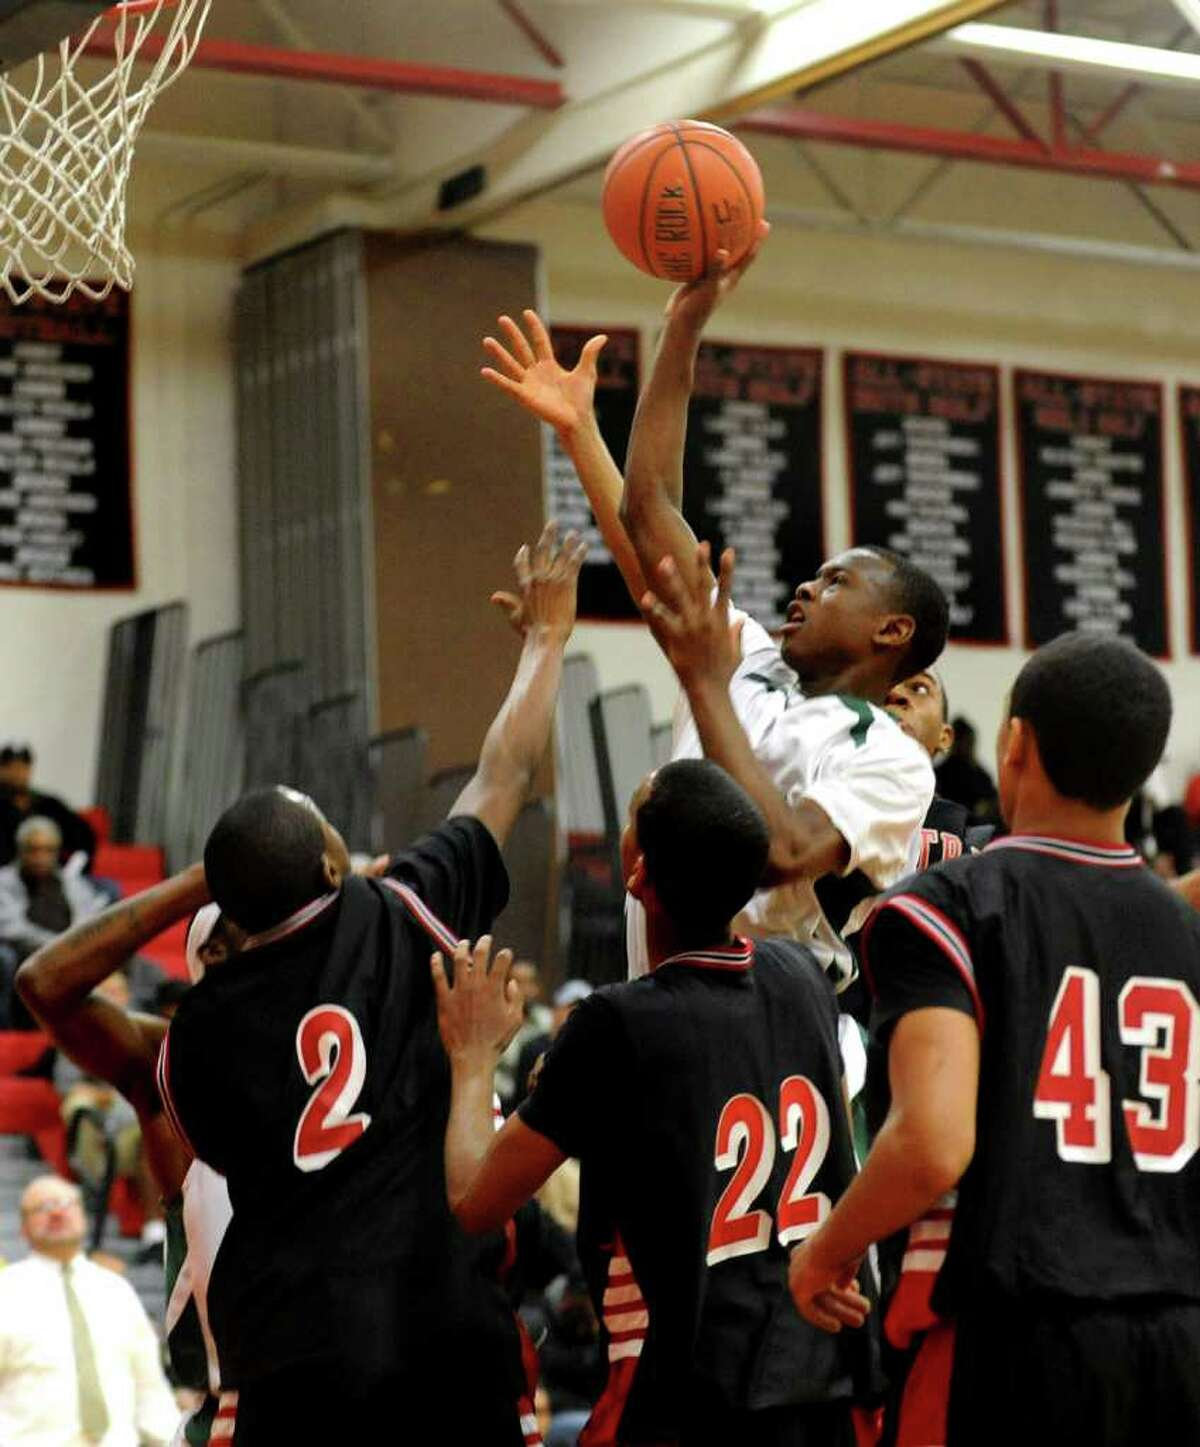 Bassick's #4 Kobe Ancurm looks to gain two points, during FCIAC Boys' Basketball Semi-final action against Central in Fairfield, Conn. on Tuesday February 28, 2012.